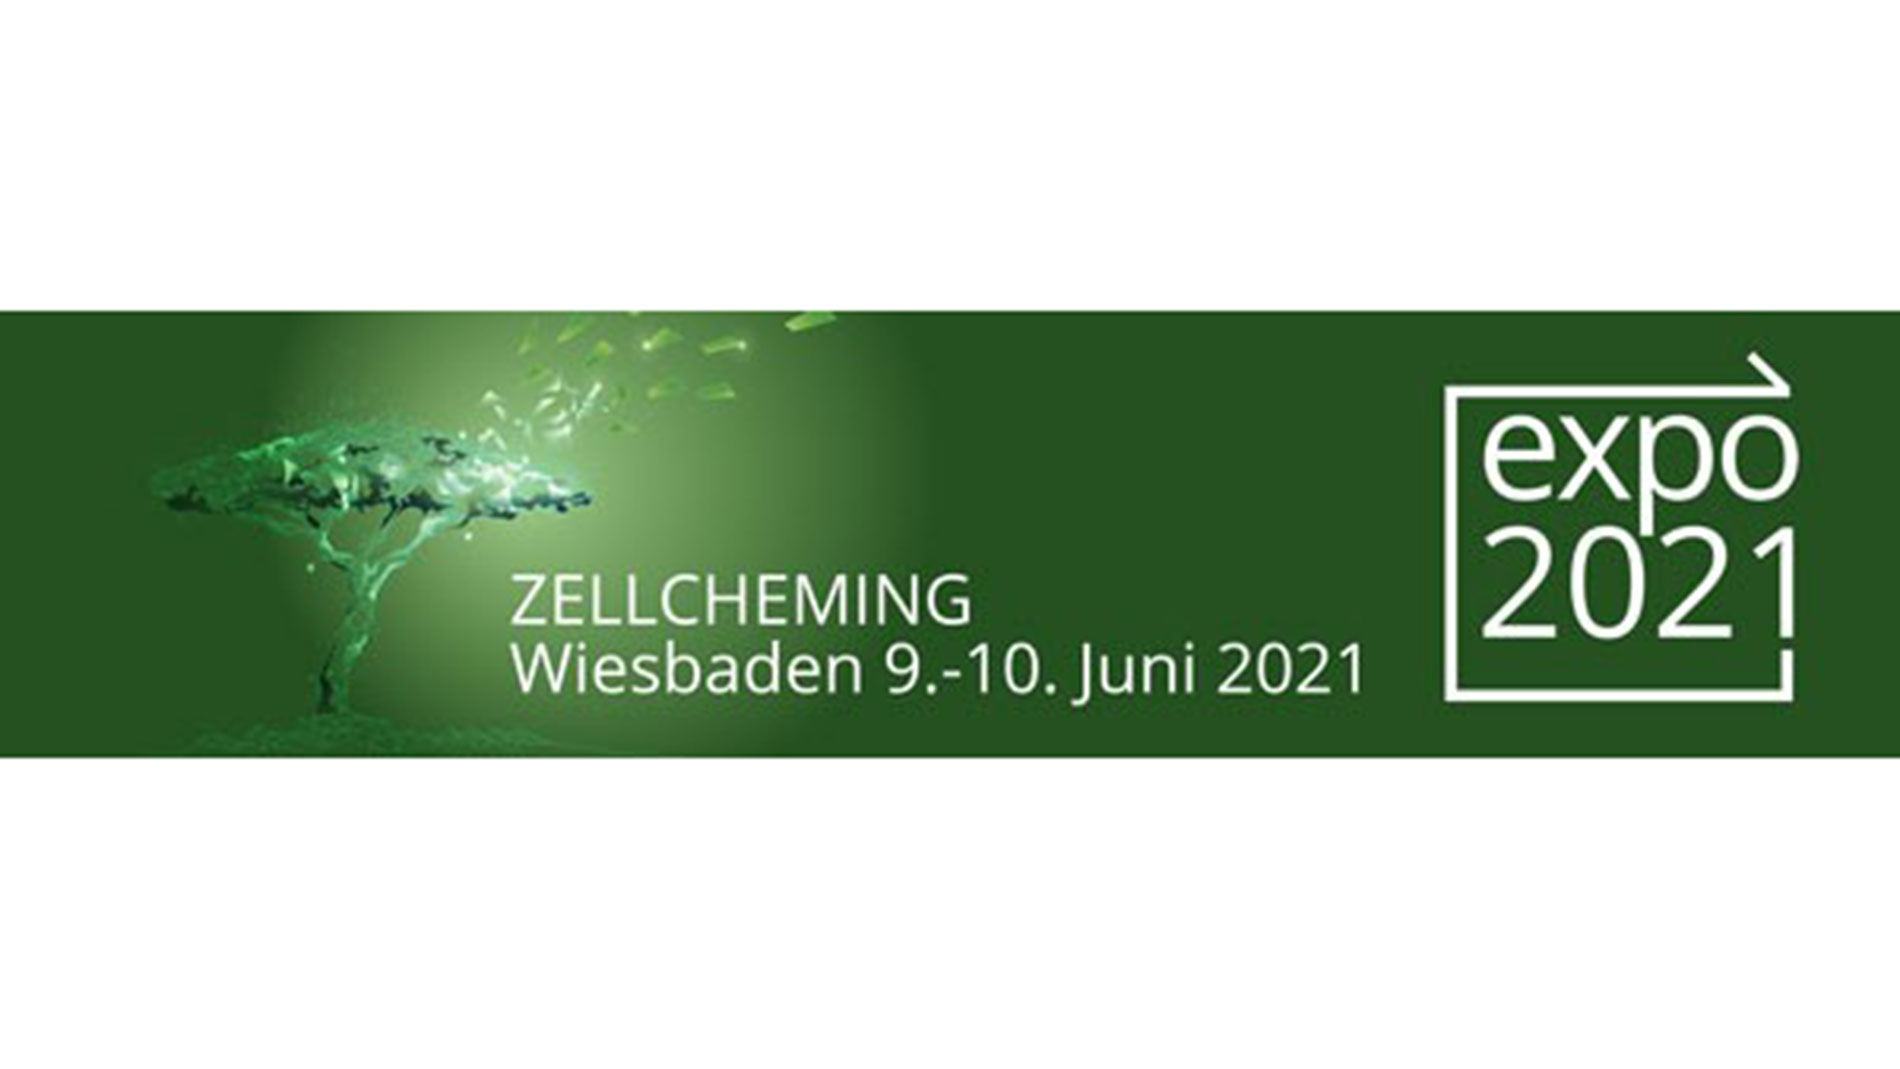 E-Mail-Signatur ZELLCHEMING-Expo